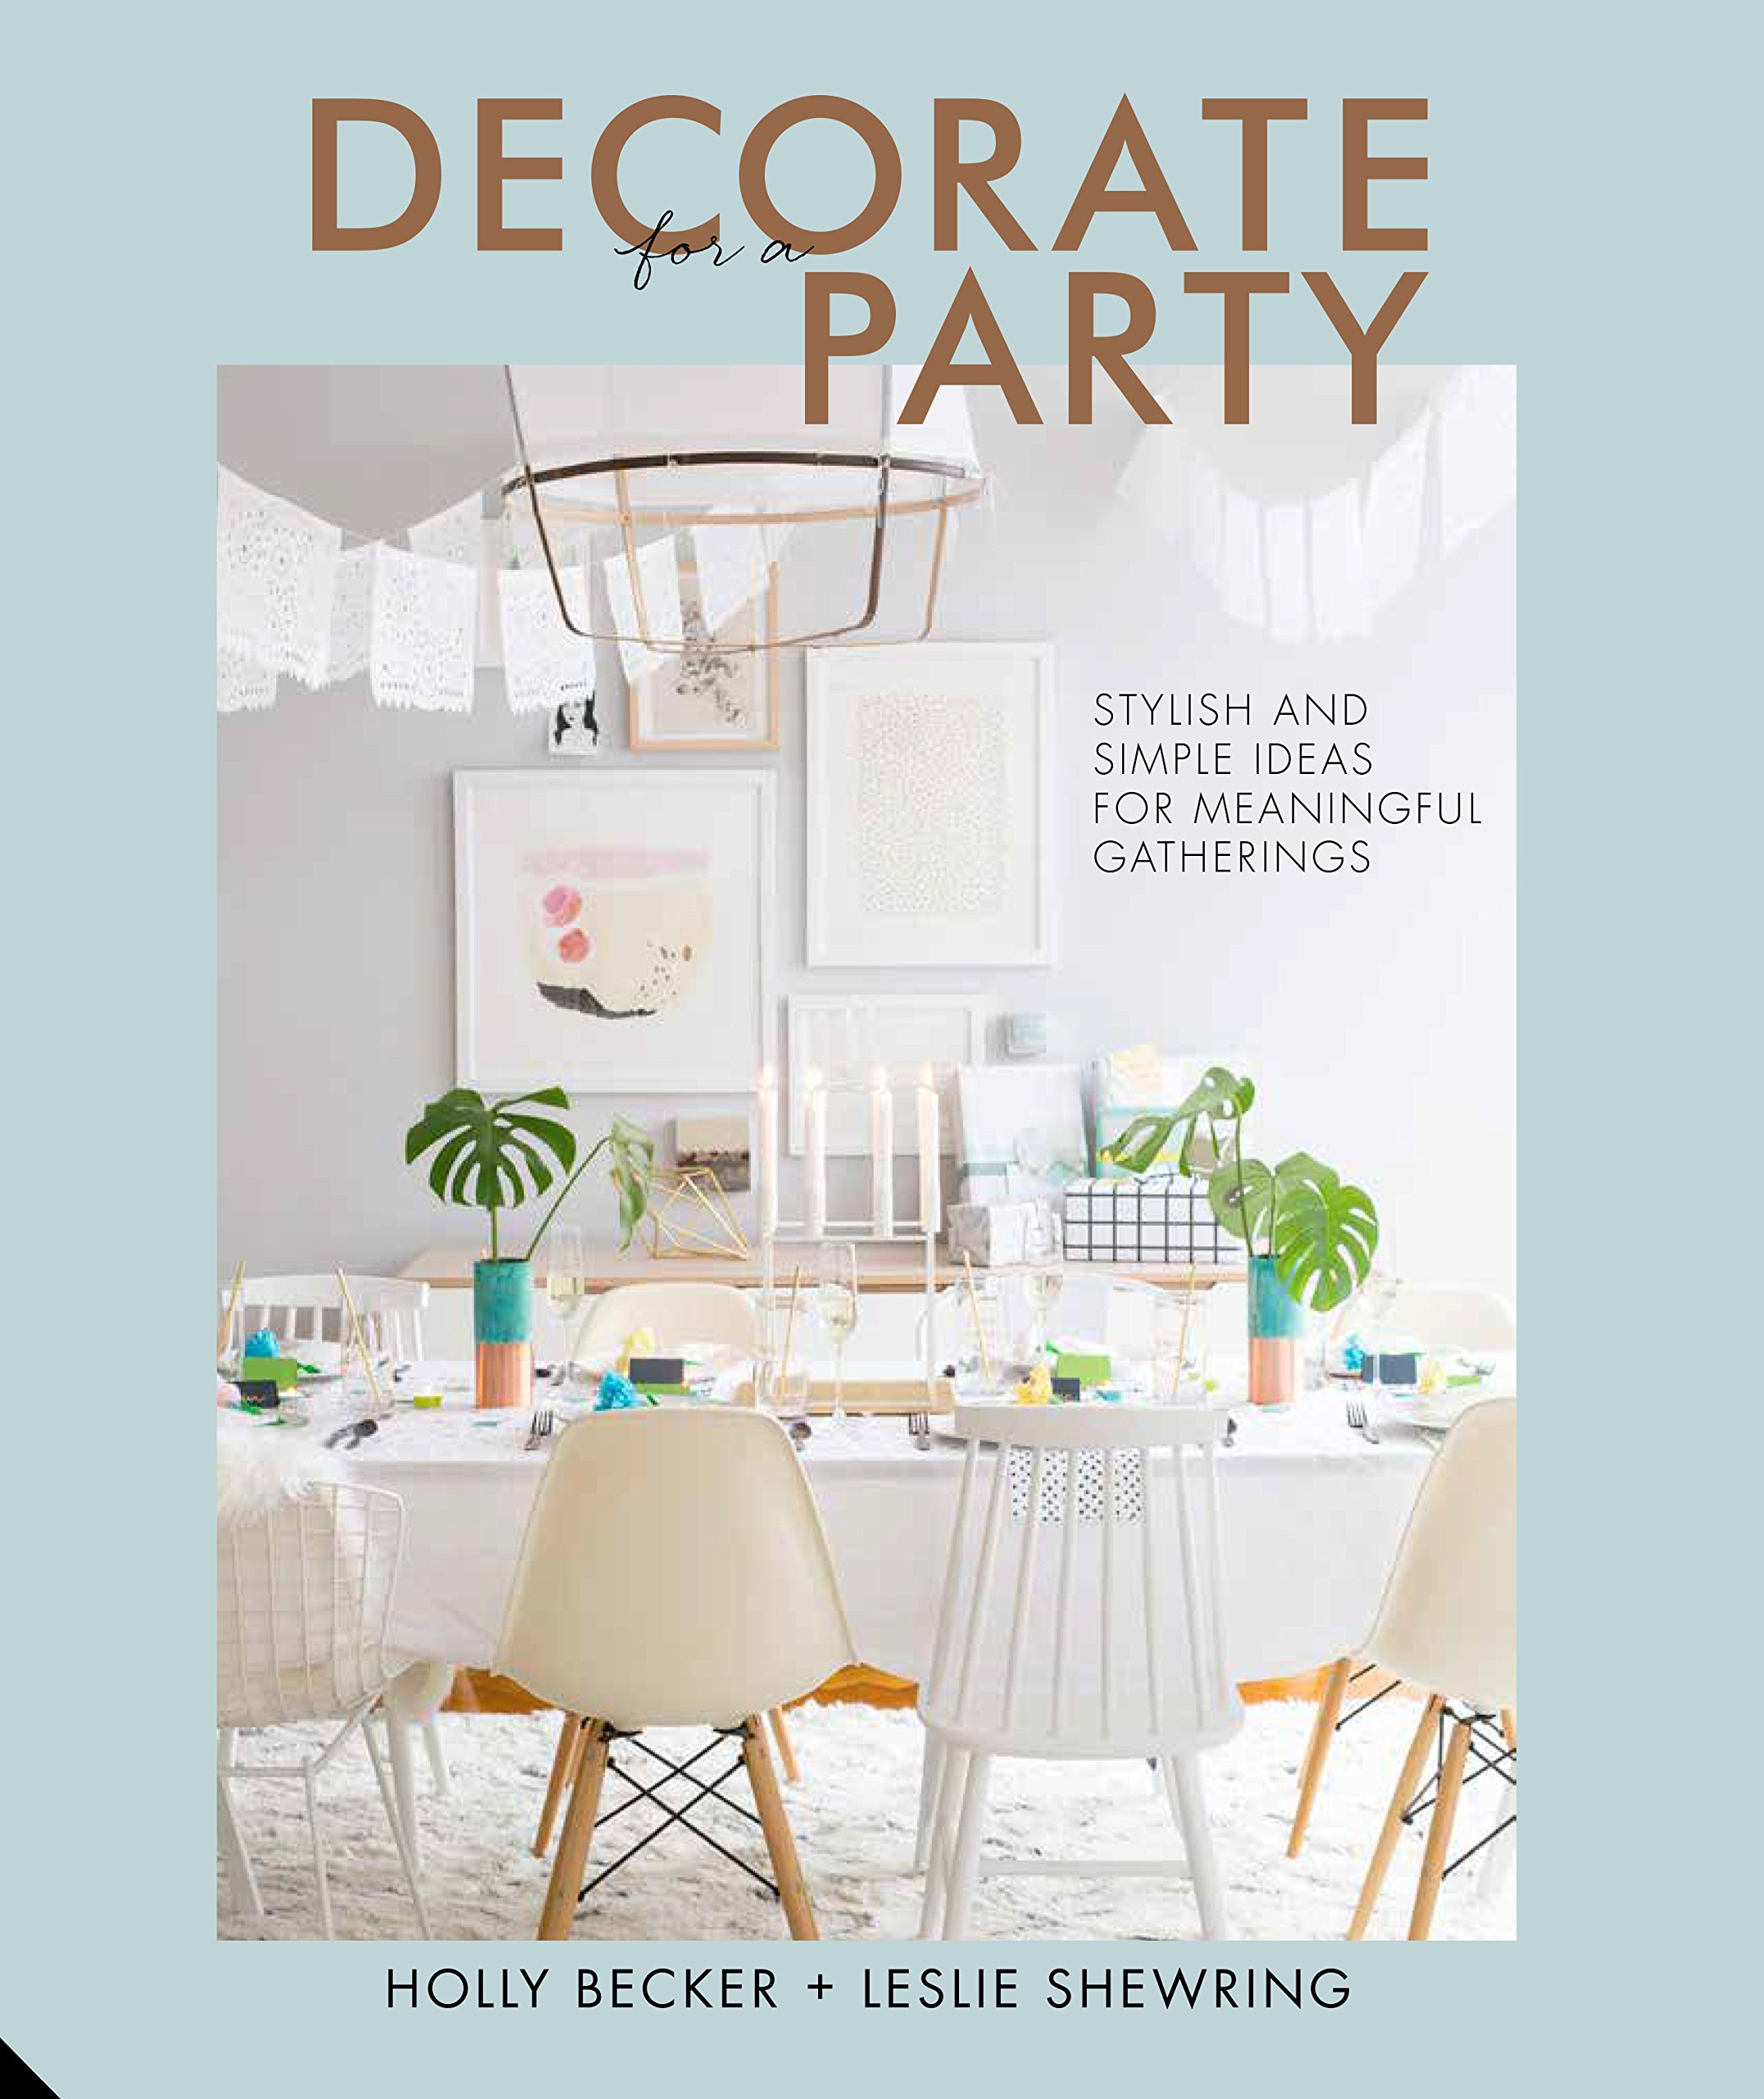 Amazon.com: Decorate for a Party: Stylish and Simple Ideas for ...